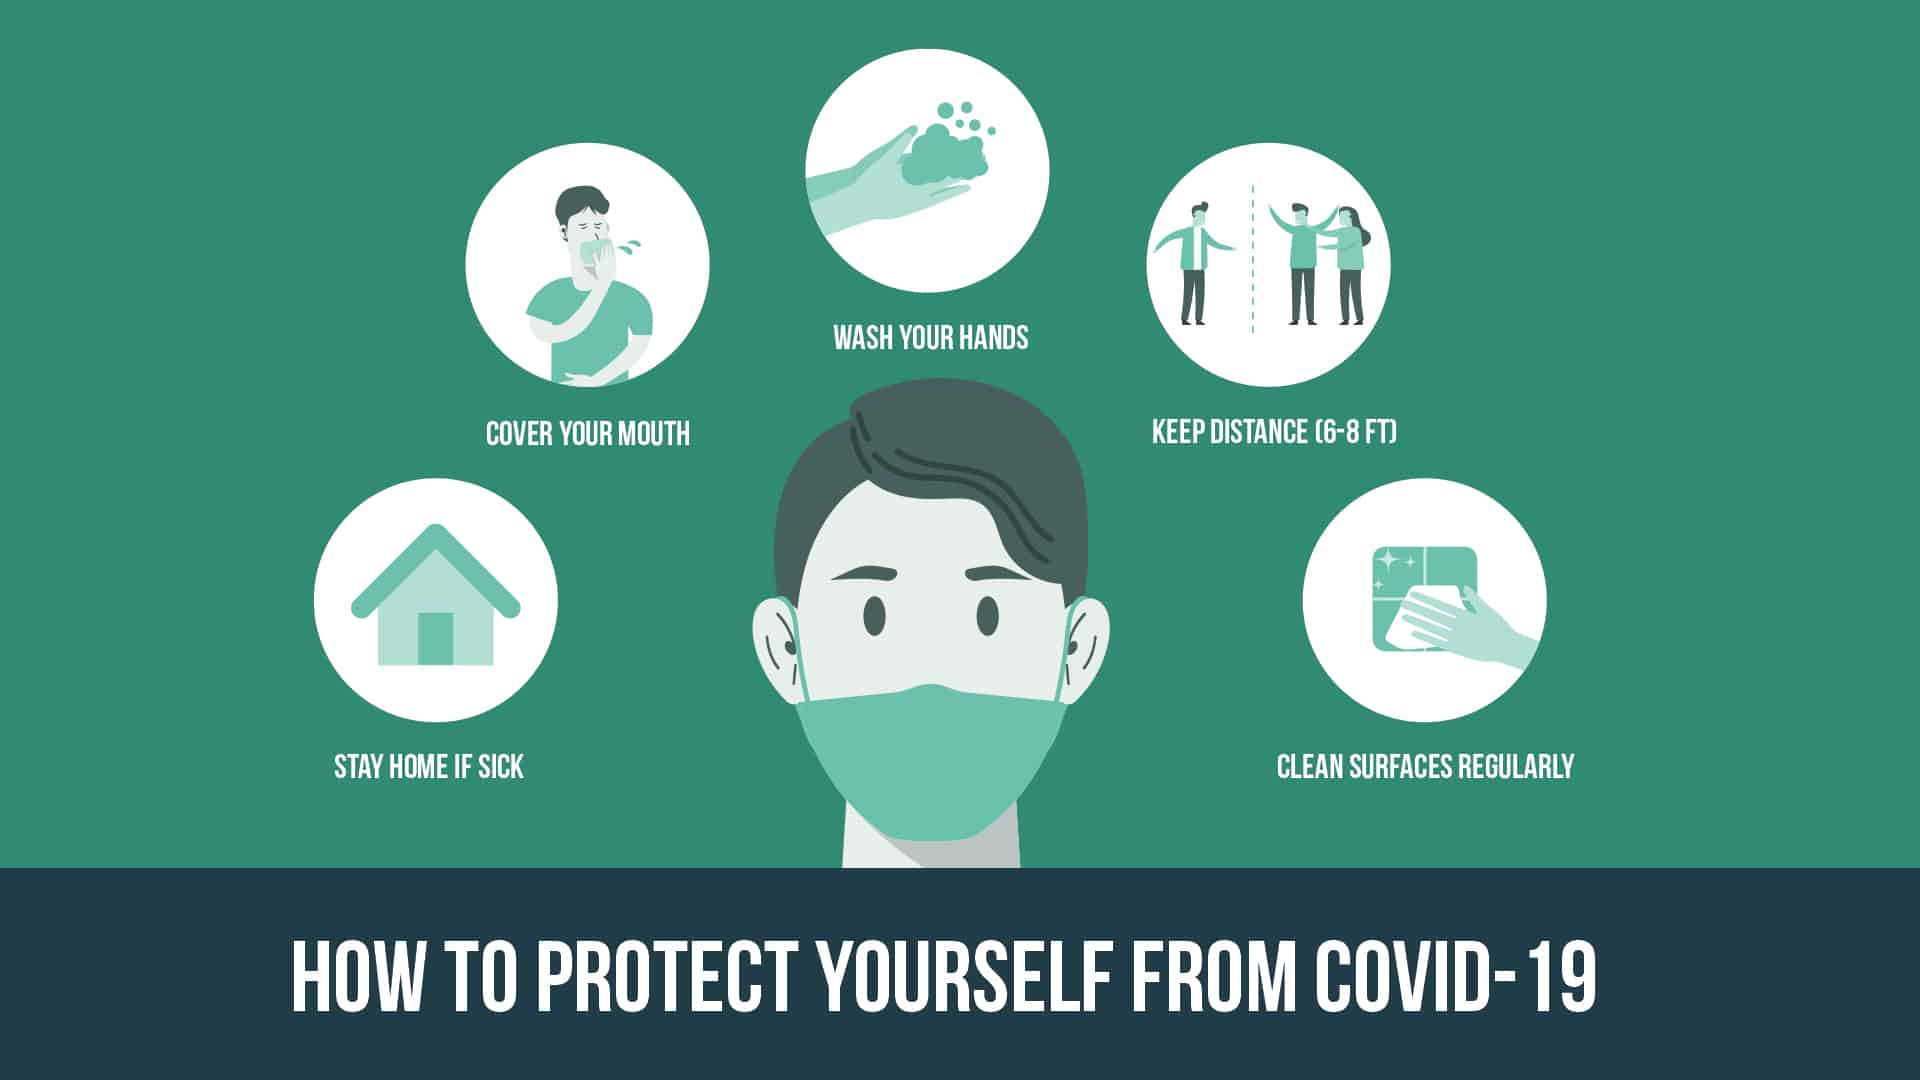 protect-yourself-covid-19-digital-signage-template